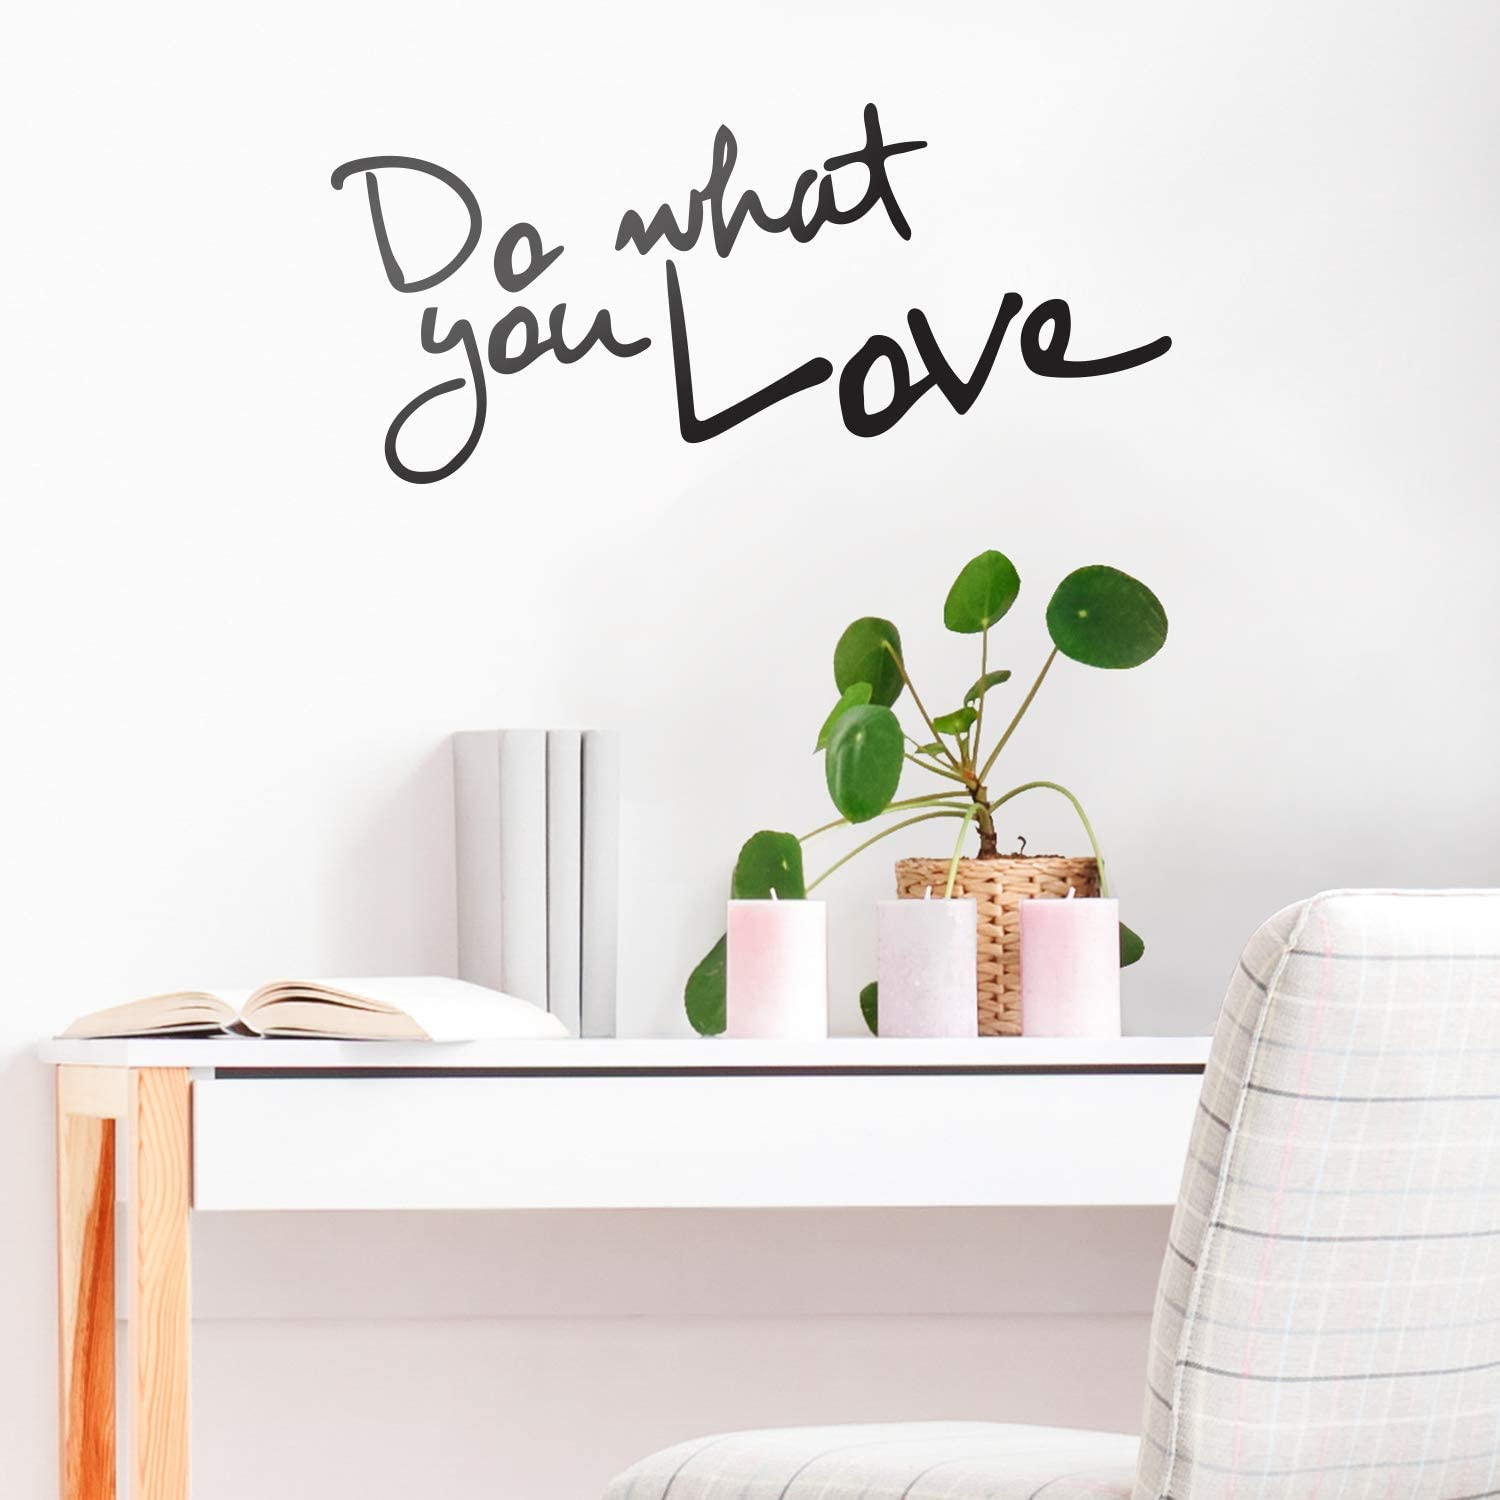 Amazon Com Do What You Love Inspirational Life Quotes Wall Art Decal 30 X 14 Decoration Vinyl Sticker Bedroom Living Room Wall Decor Apartment Wall Decoration Peel Off